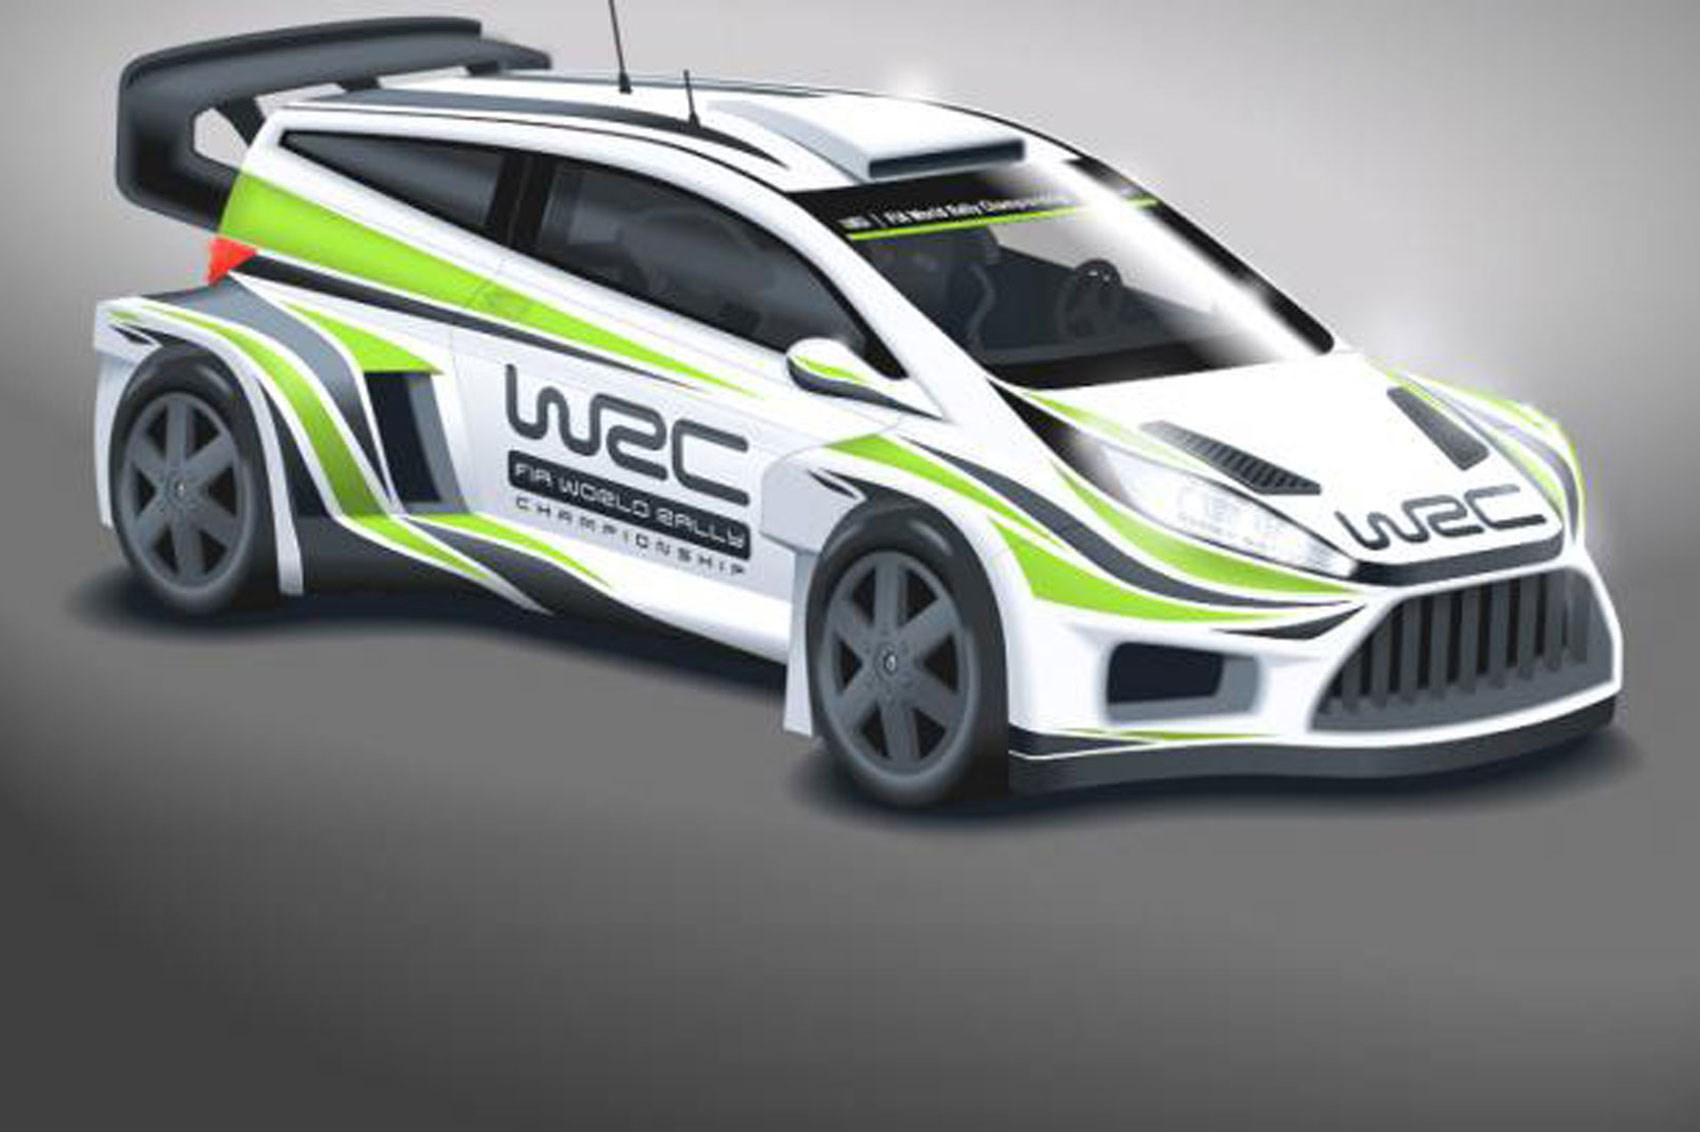 Ultrablogus  Scenic Wild New Look For Wrc Cars In  By Car Magazine With Engaging Wrc Cars Will Get Wider Bodies Bigger Wings And More Power For  With Cute Audi R E Tron Interior Also Mitsubishi Outlander Interior In Addition Bmw  Series Interior And Cayenne Interior As Well As Cla Mercedes Interior Additionally M Interior From Carmagazinecouk With Ultrablogus  Engaging Wild New Look For Wrc Cars In  By Car Magazine With Cute Wrc Cars Will Get Wider Bodies Bigger Wings And More Power For  And Scenic Audi R E Tron Interior Also Mitsubishi Outlander Interior In Addition Bmw  Series Interior From Carmagazinecouk